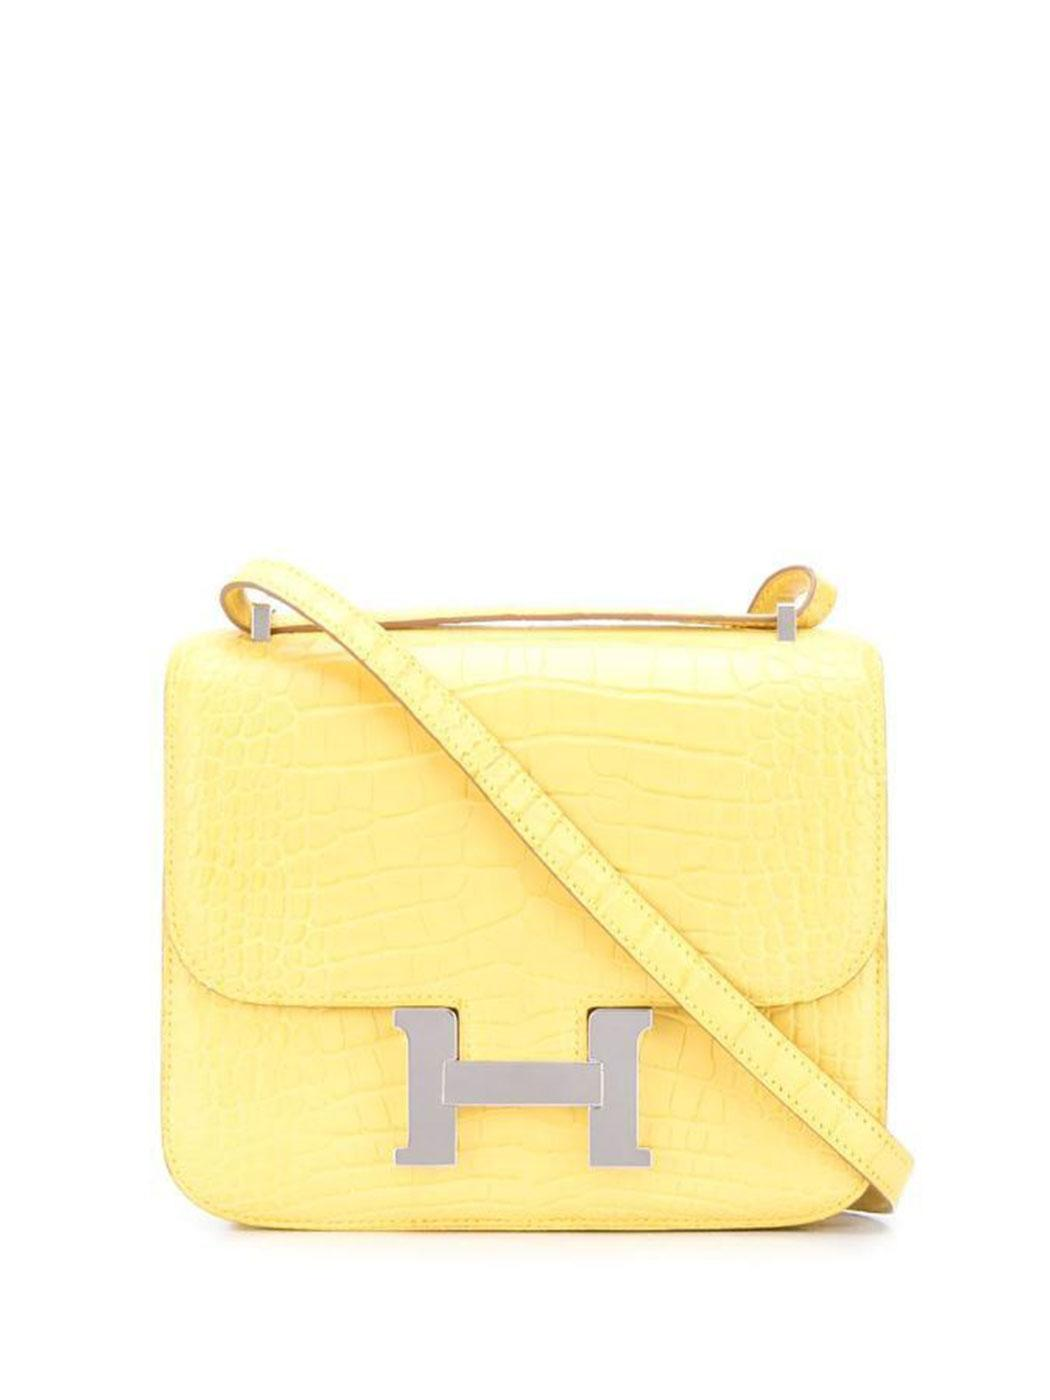 Hermes Yellow Mimosa Alligator Constance Bag